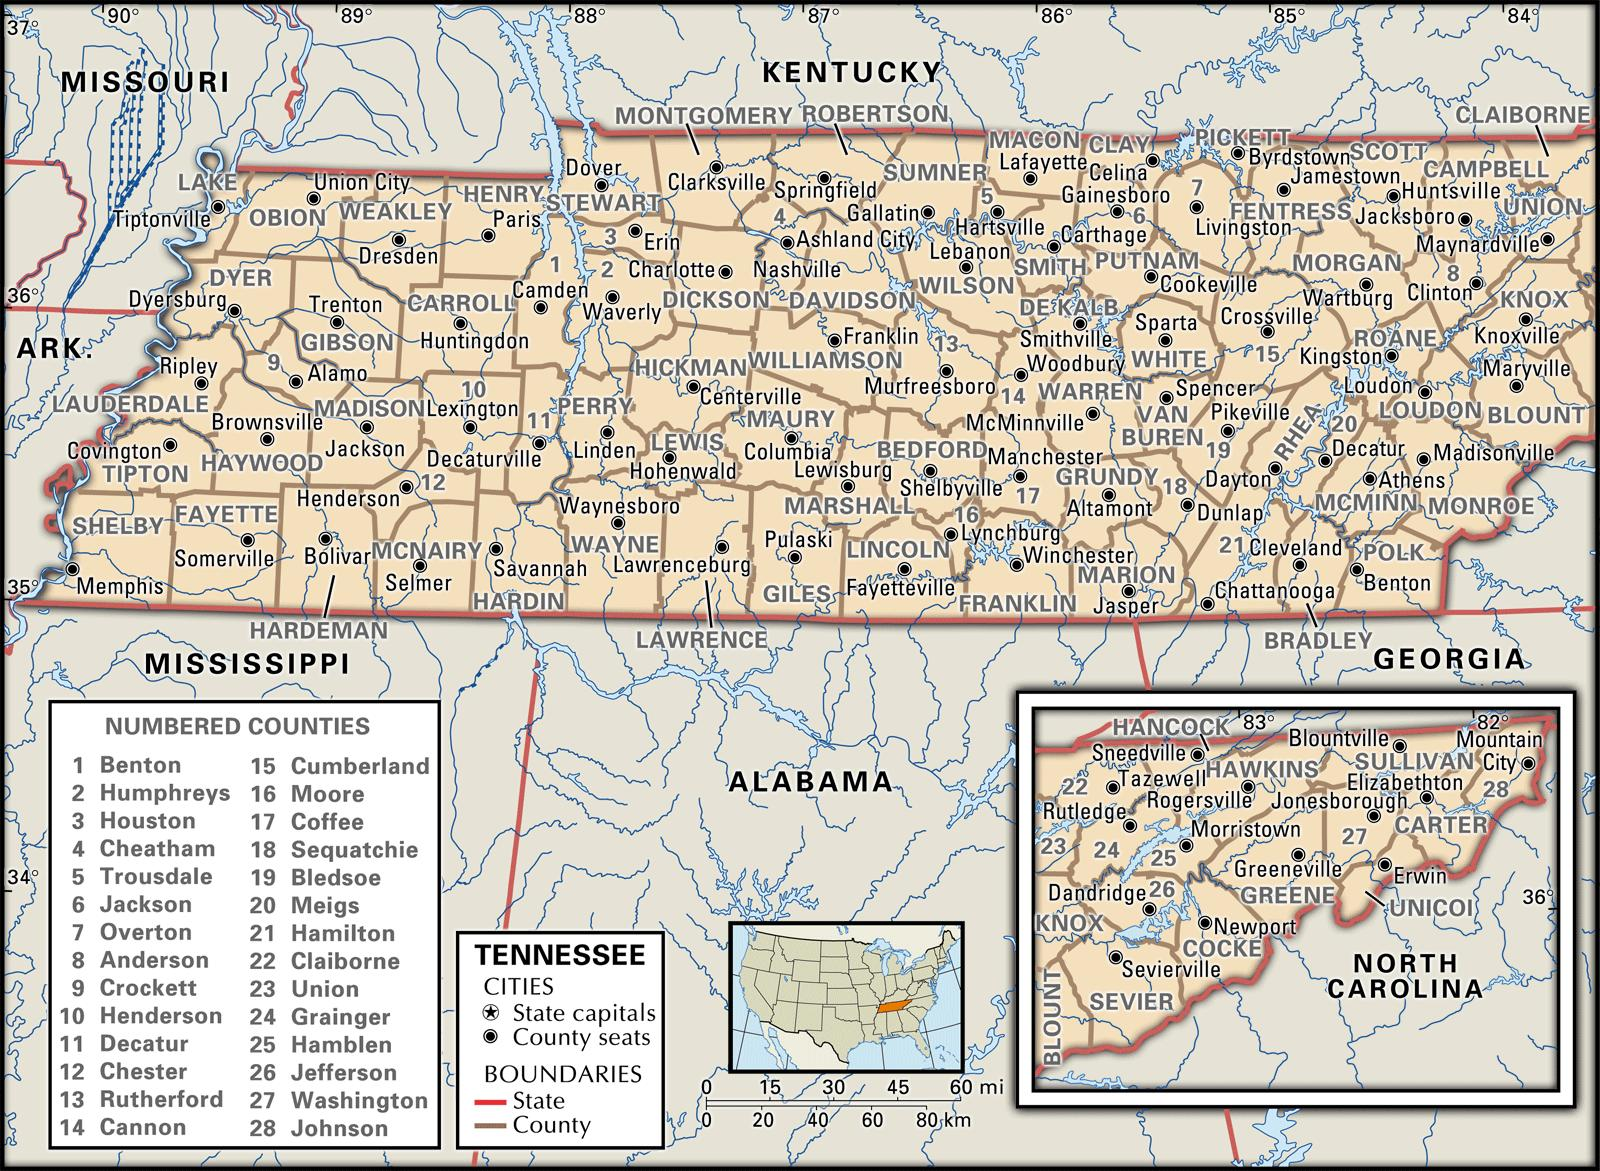 Tennessee Cities Map State and County Maps of Tennessee